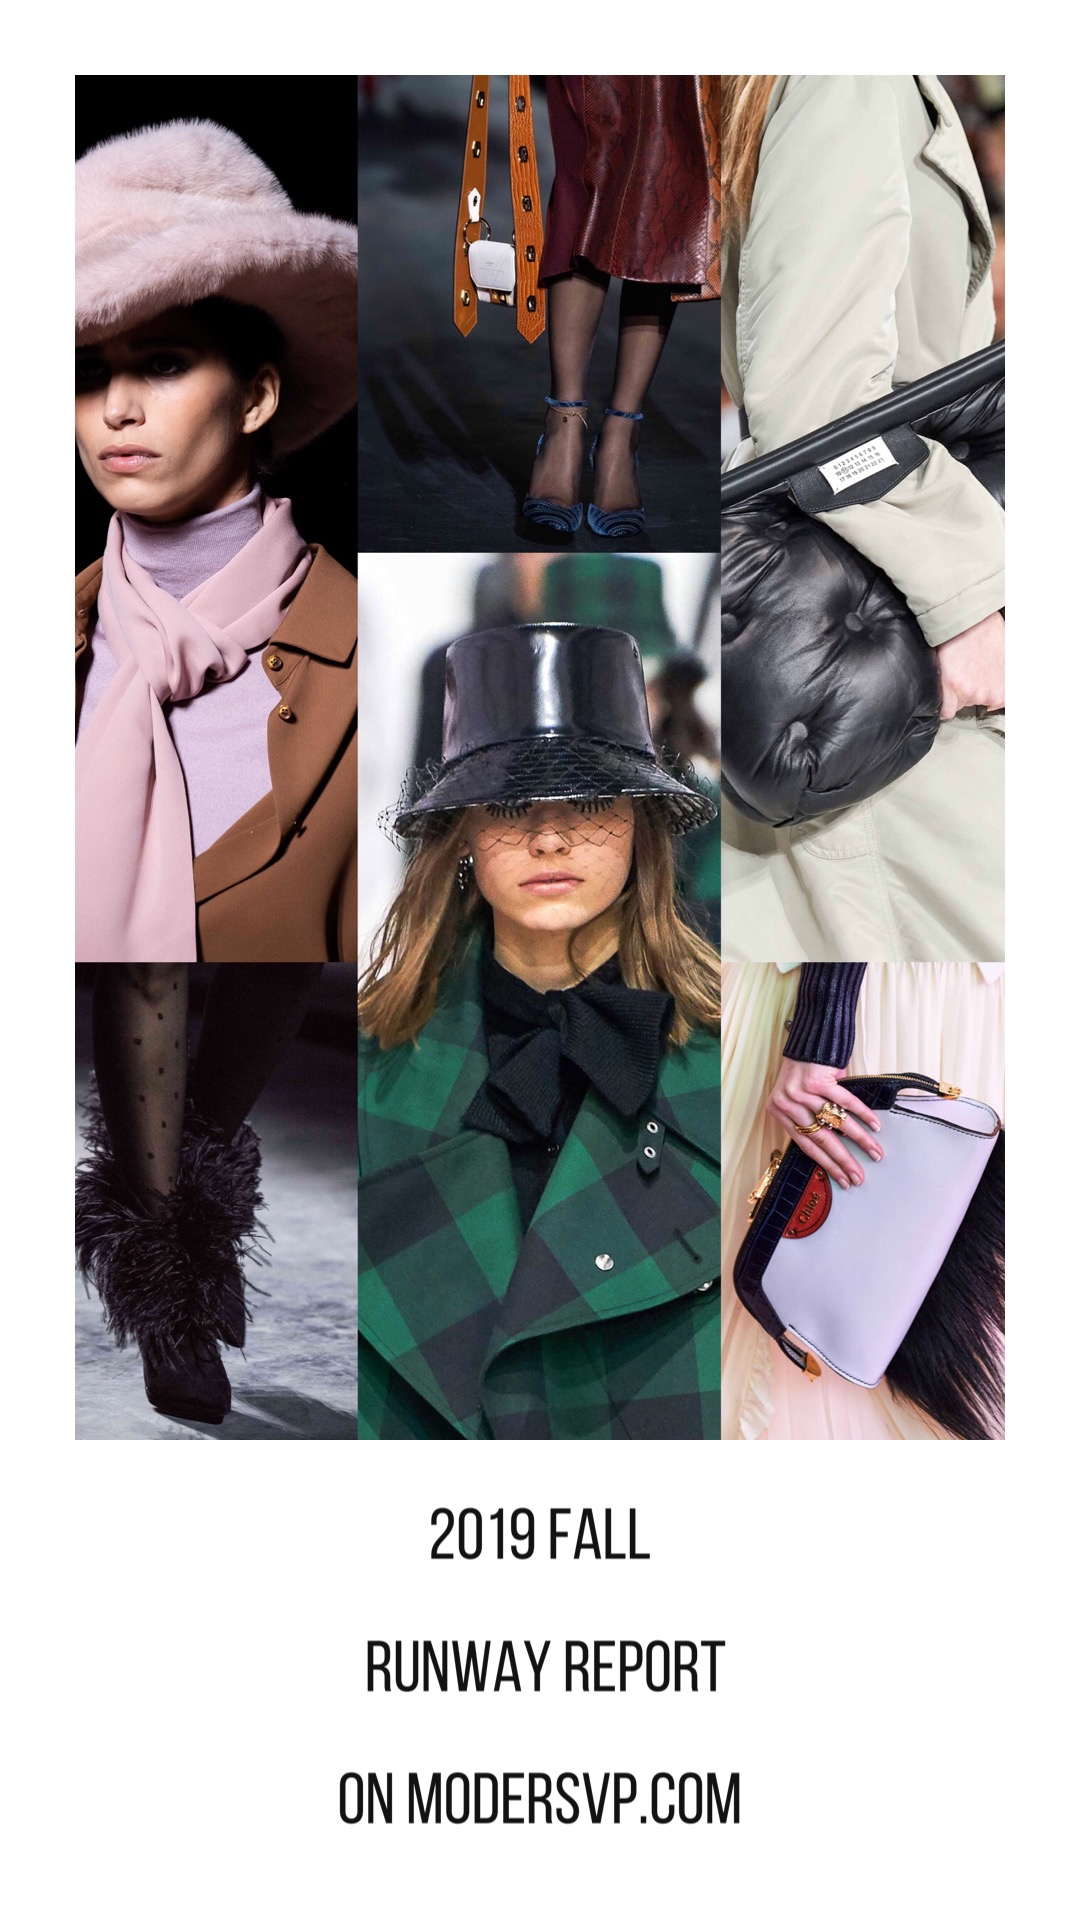 Fall Winter 2019 2020 Fashion Week Coverage. Discover the biggest fall winter 2019 trends from New York, London, Milan and Paris fashion week on Modersvp.com. Tom Ford / Saint Laurent / Givenchy / Dior / Maison Margiela / Chloe